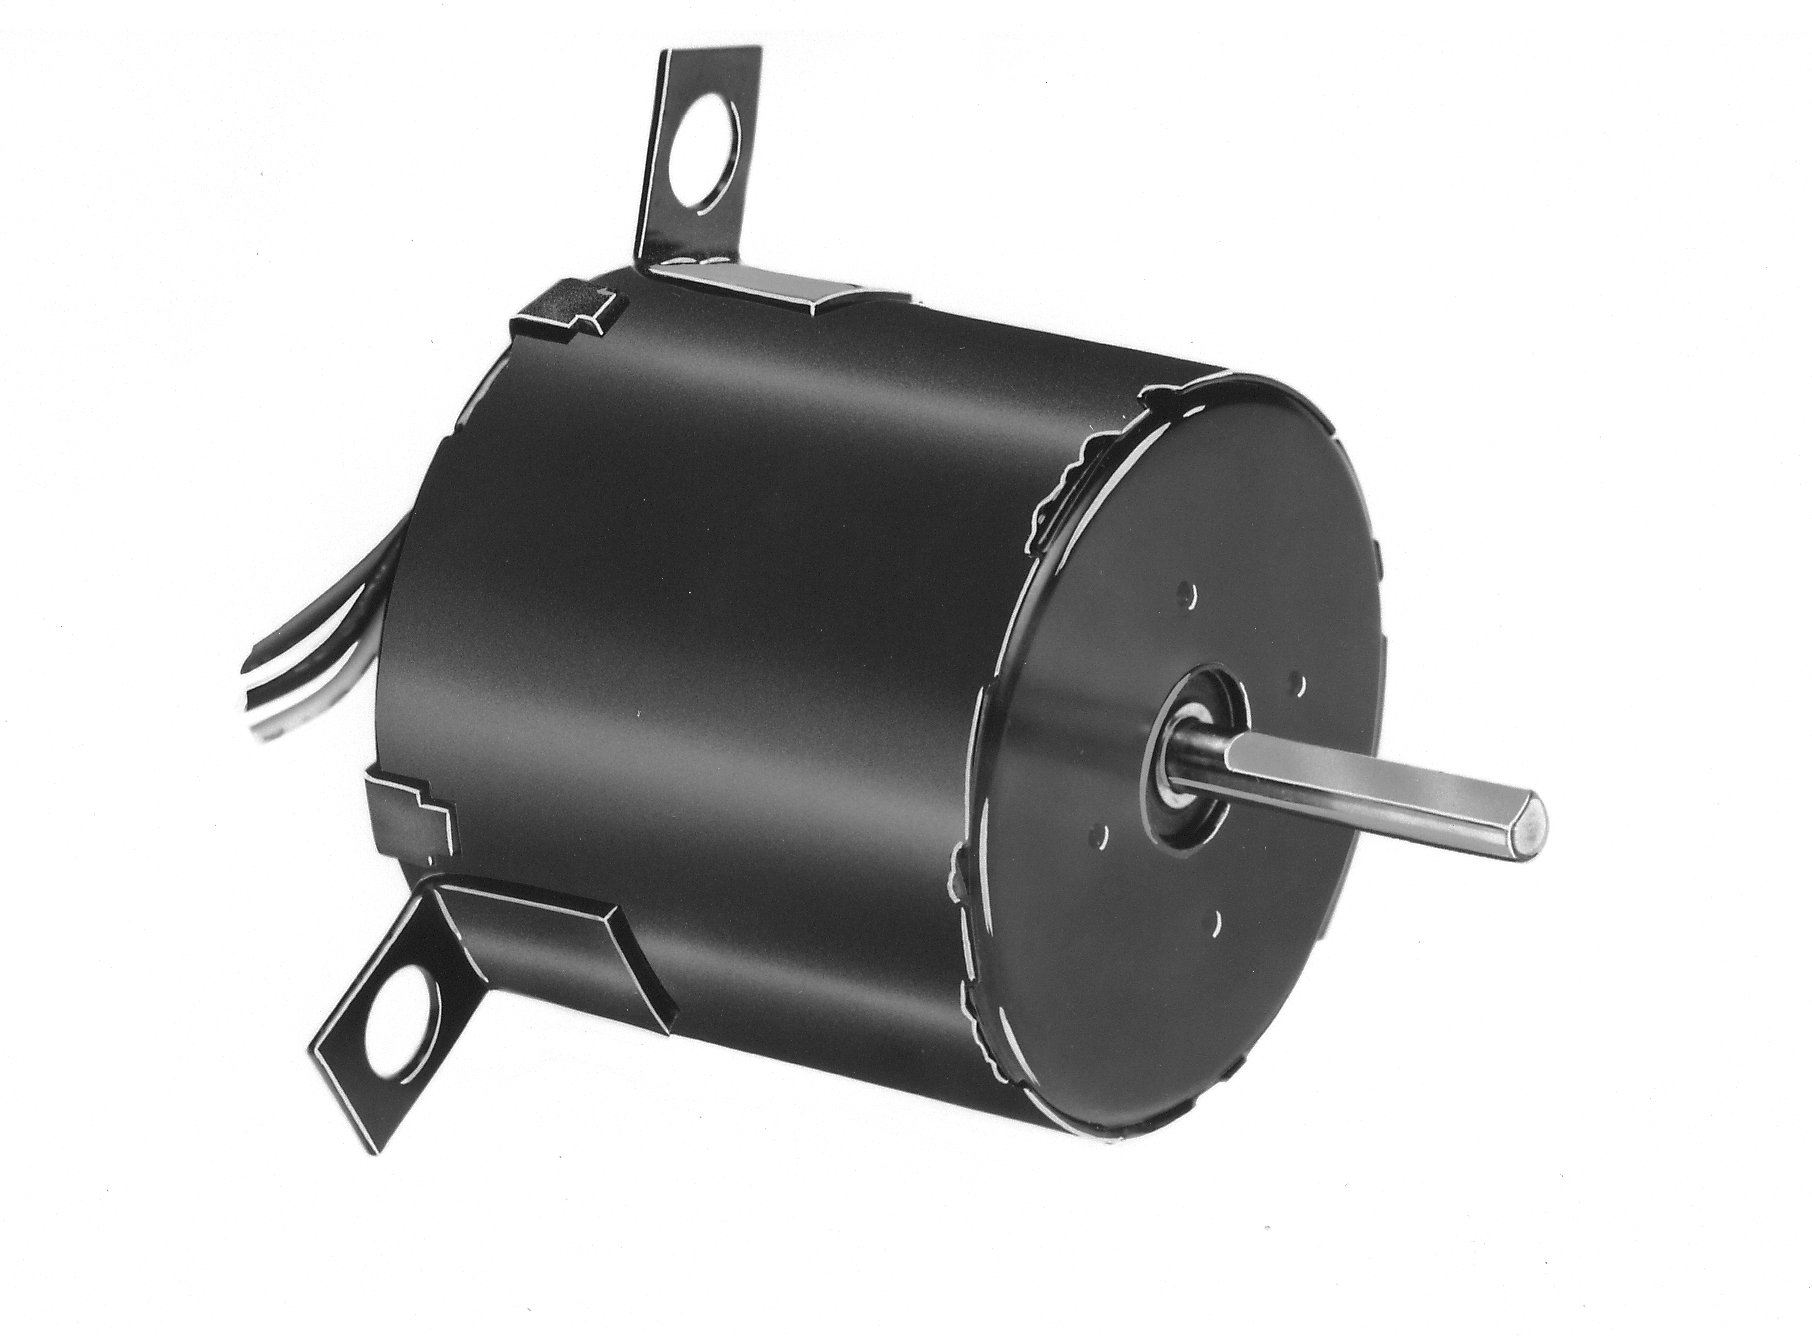 Fasco D1189 3.3'' Frame Totally Enclosed Shaded Pole OEM Replacement Motor withBall Bearing, 1/20HP, 1550rpm, 115/208-230V, 60Hz, 1.4-0.76 amps